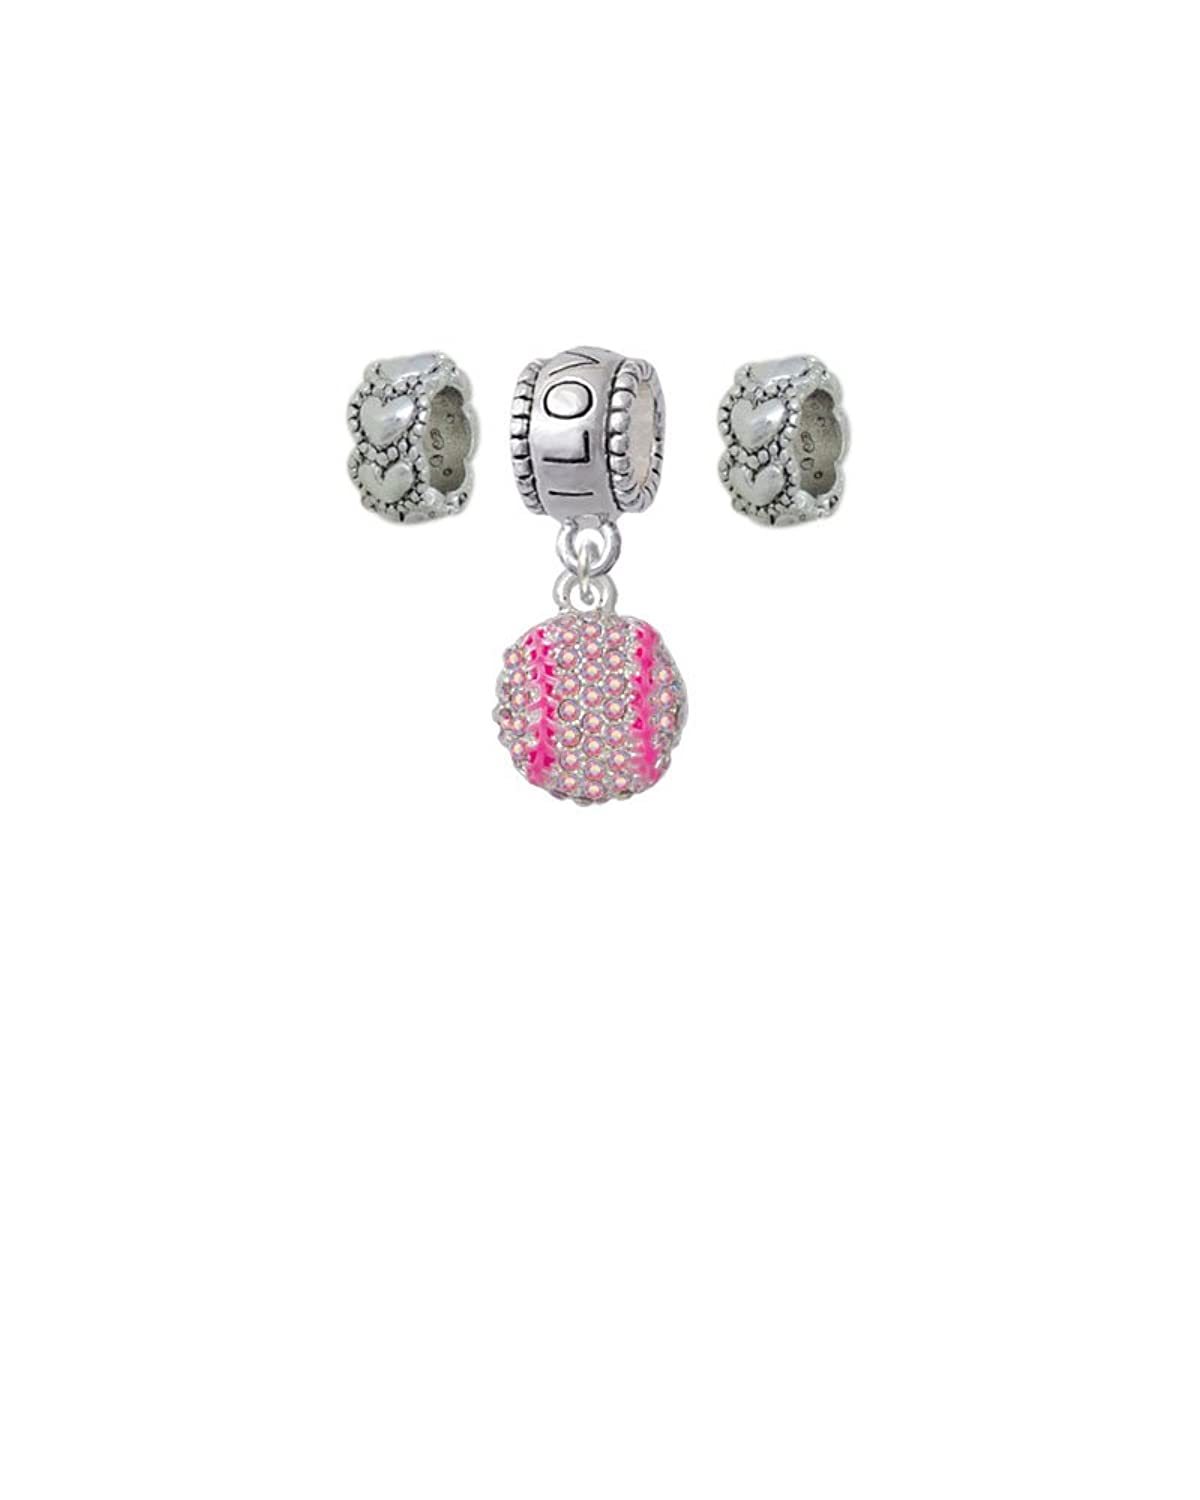 Small Sparkle Crystal Softball I Love You Charm Hanger with Mini Heart Beads (Set of 3)